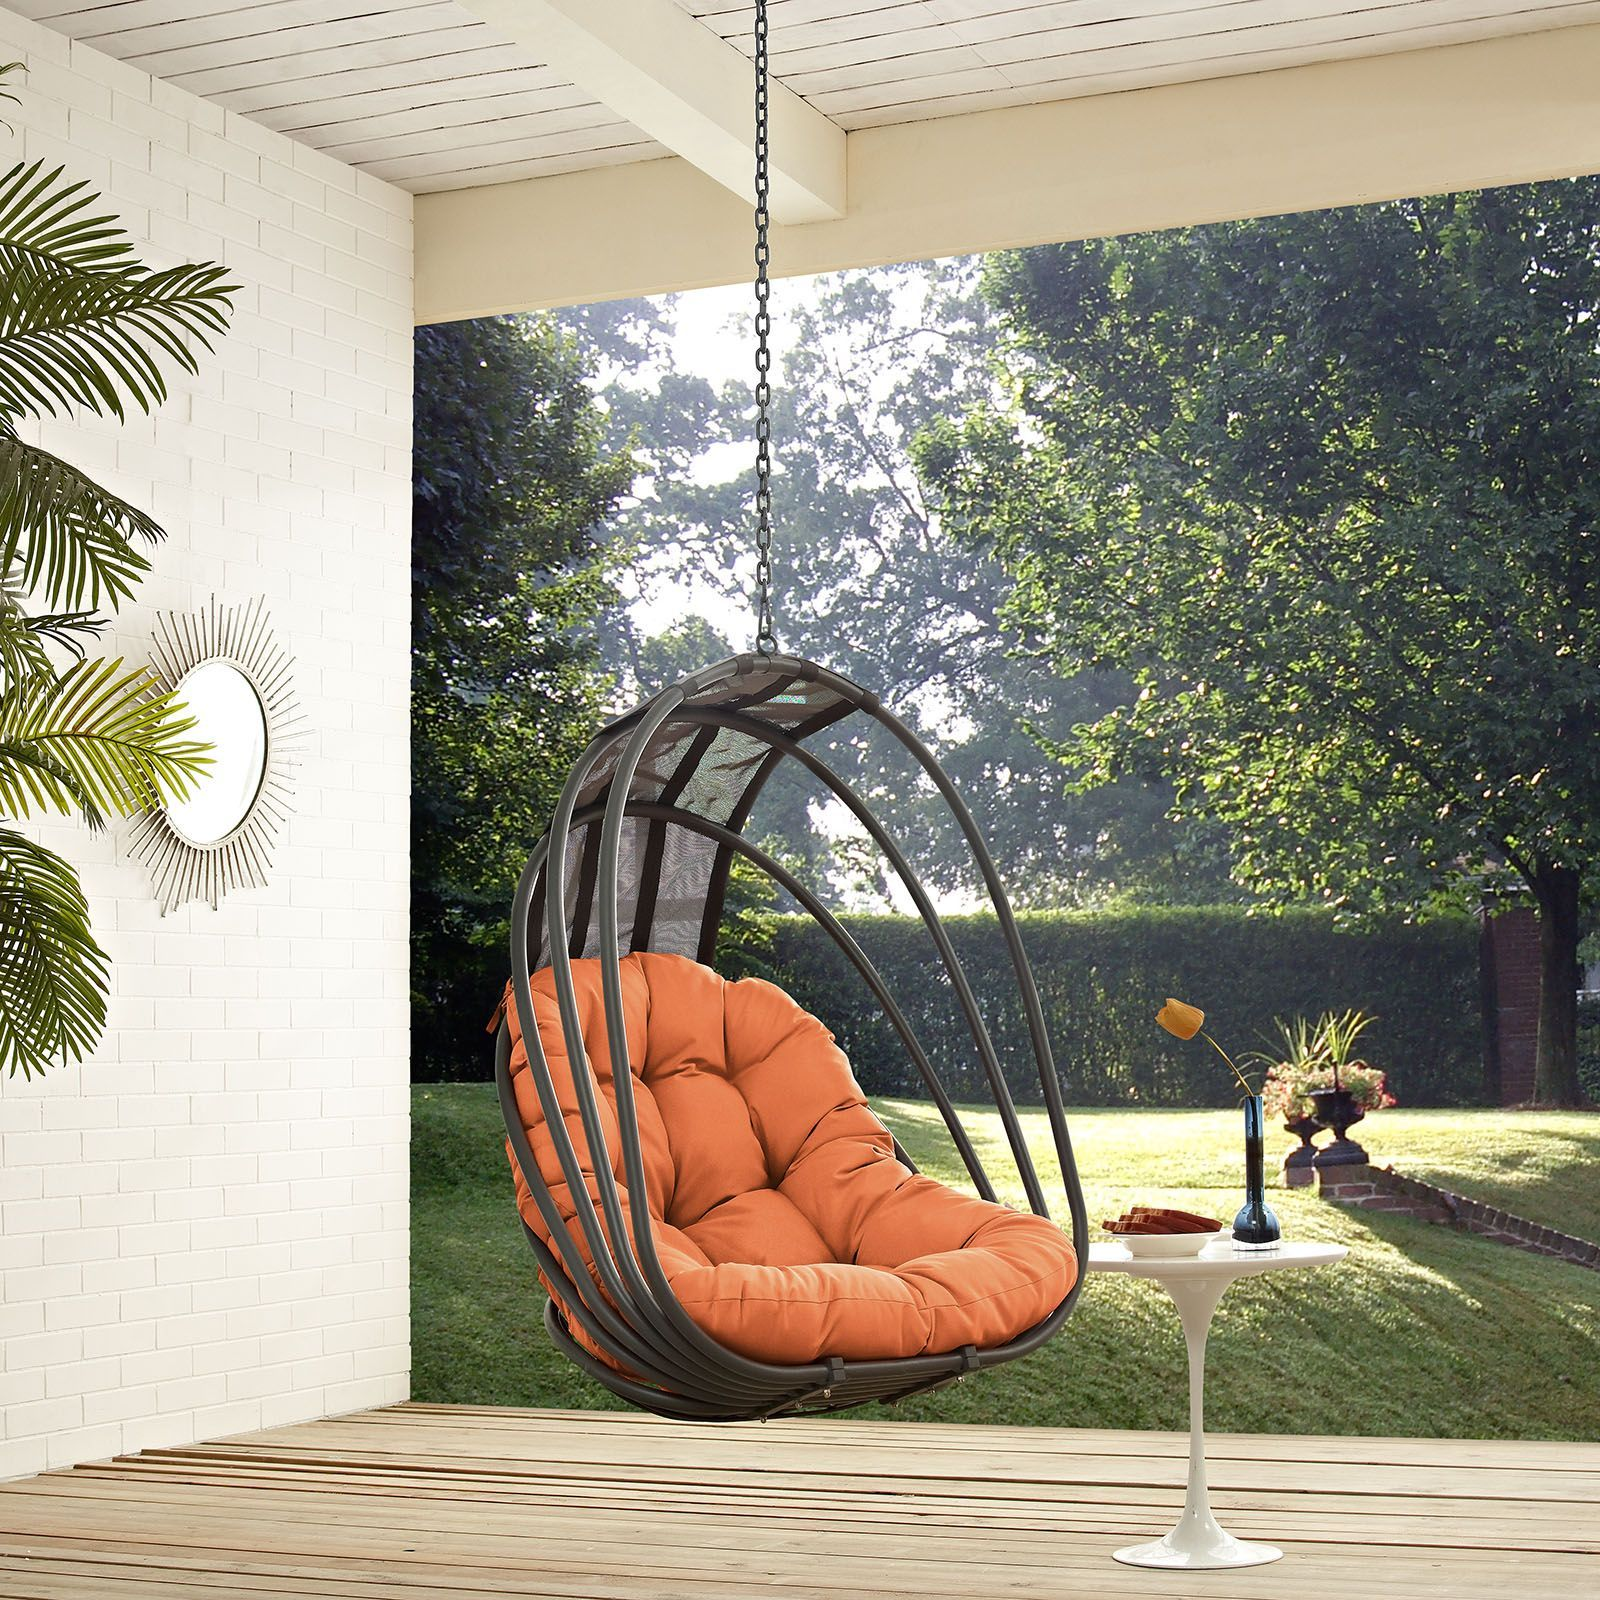 Whisk outdoor patio swing chair without stand orange whip up